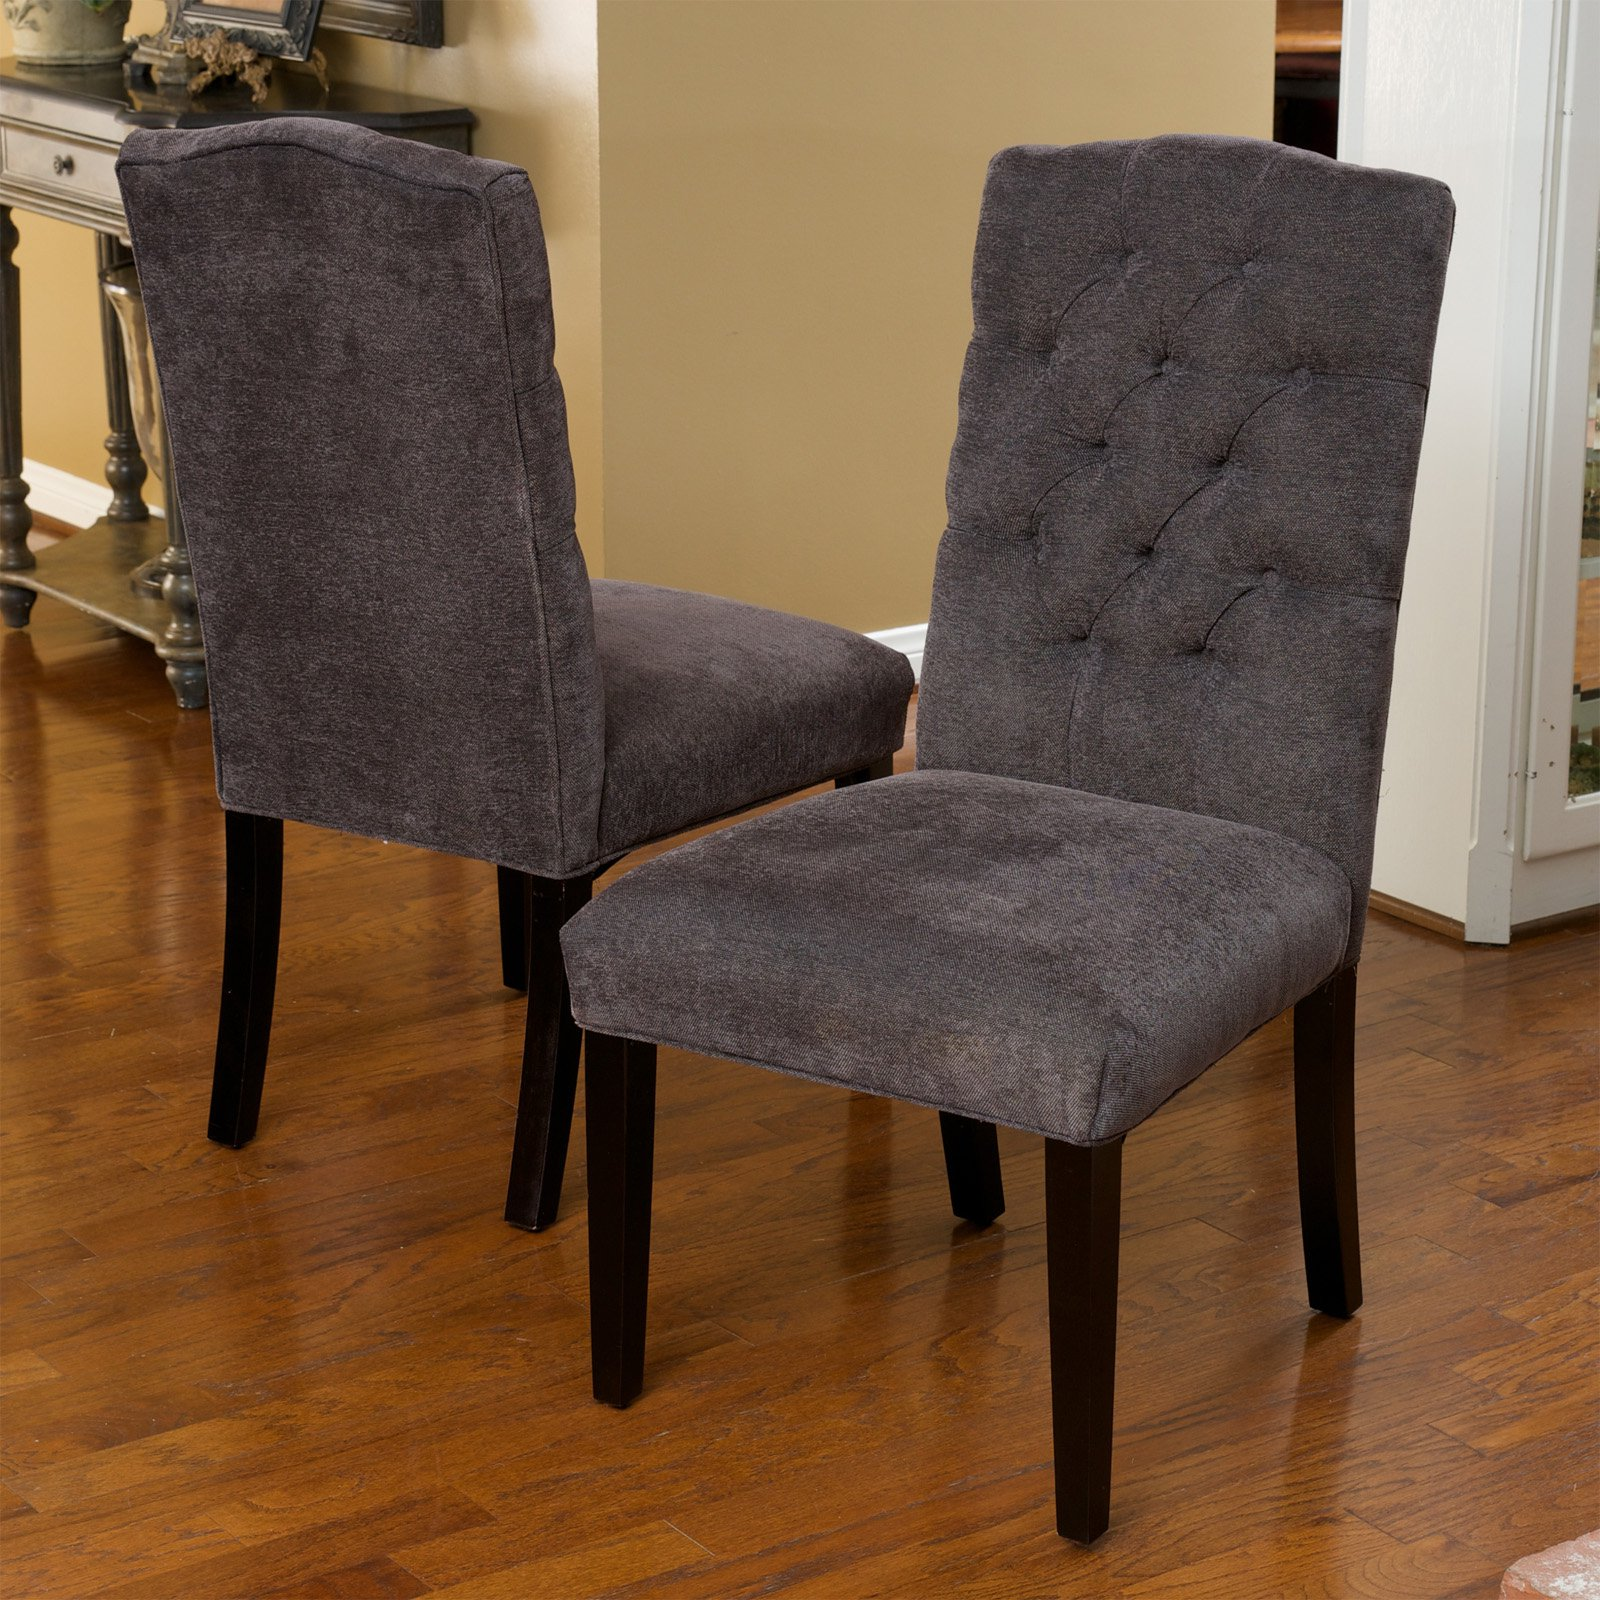 upholstered dining chairs canada chair cover hire rotorua crown top walmart com